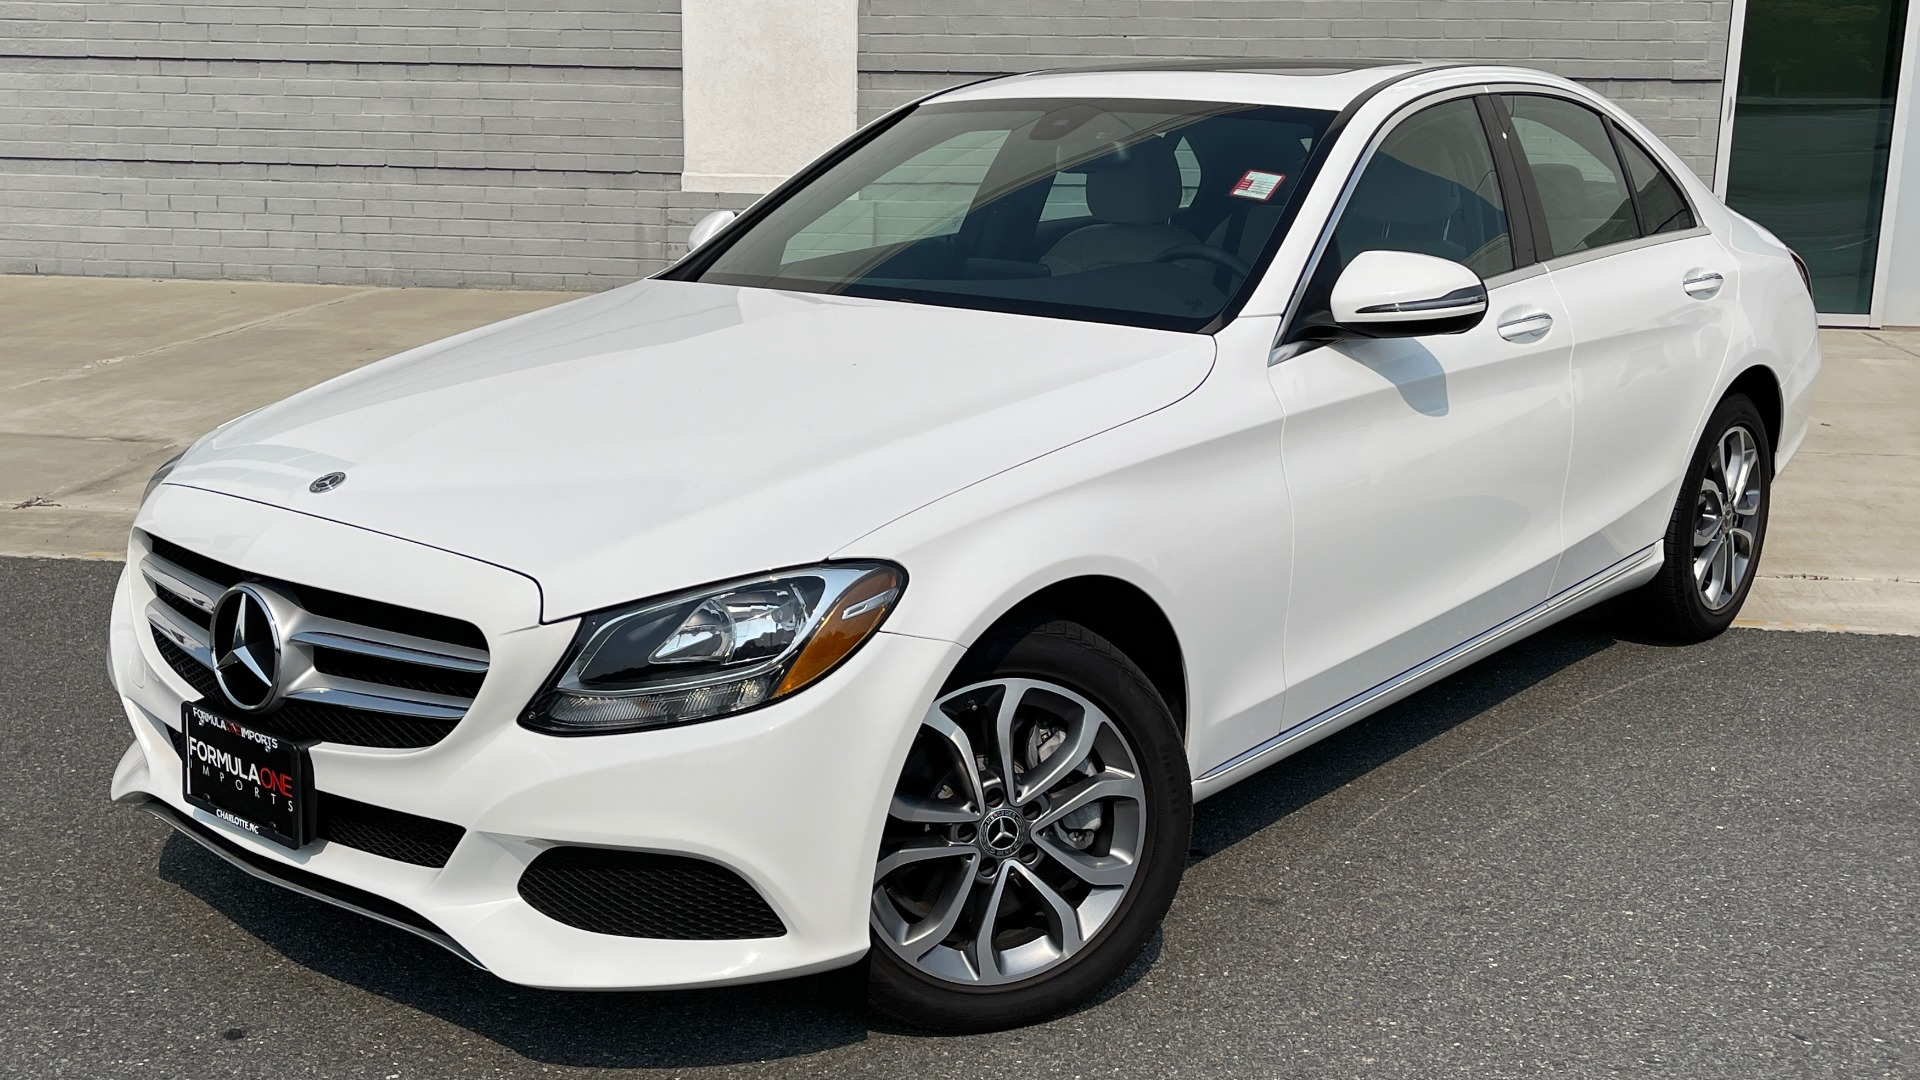 Used 2018 Mercedes-Benz C-Class C 300 4MATIC / PREMIUM / BURMESTER / HTD STS / SUNROOF / REARVIEW for sale $33,995 at Formula Imports in Charlotte NC 28227 1